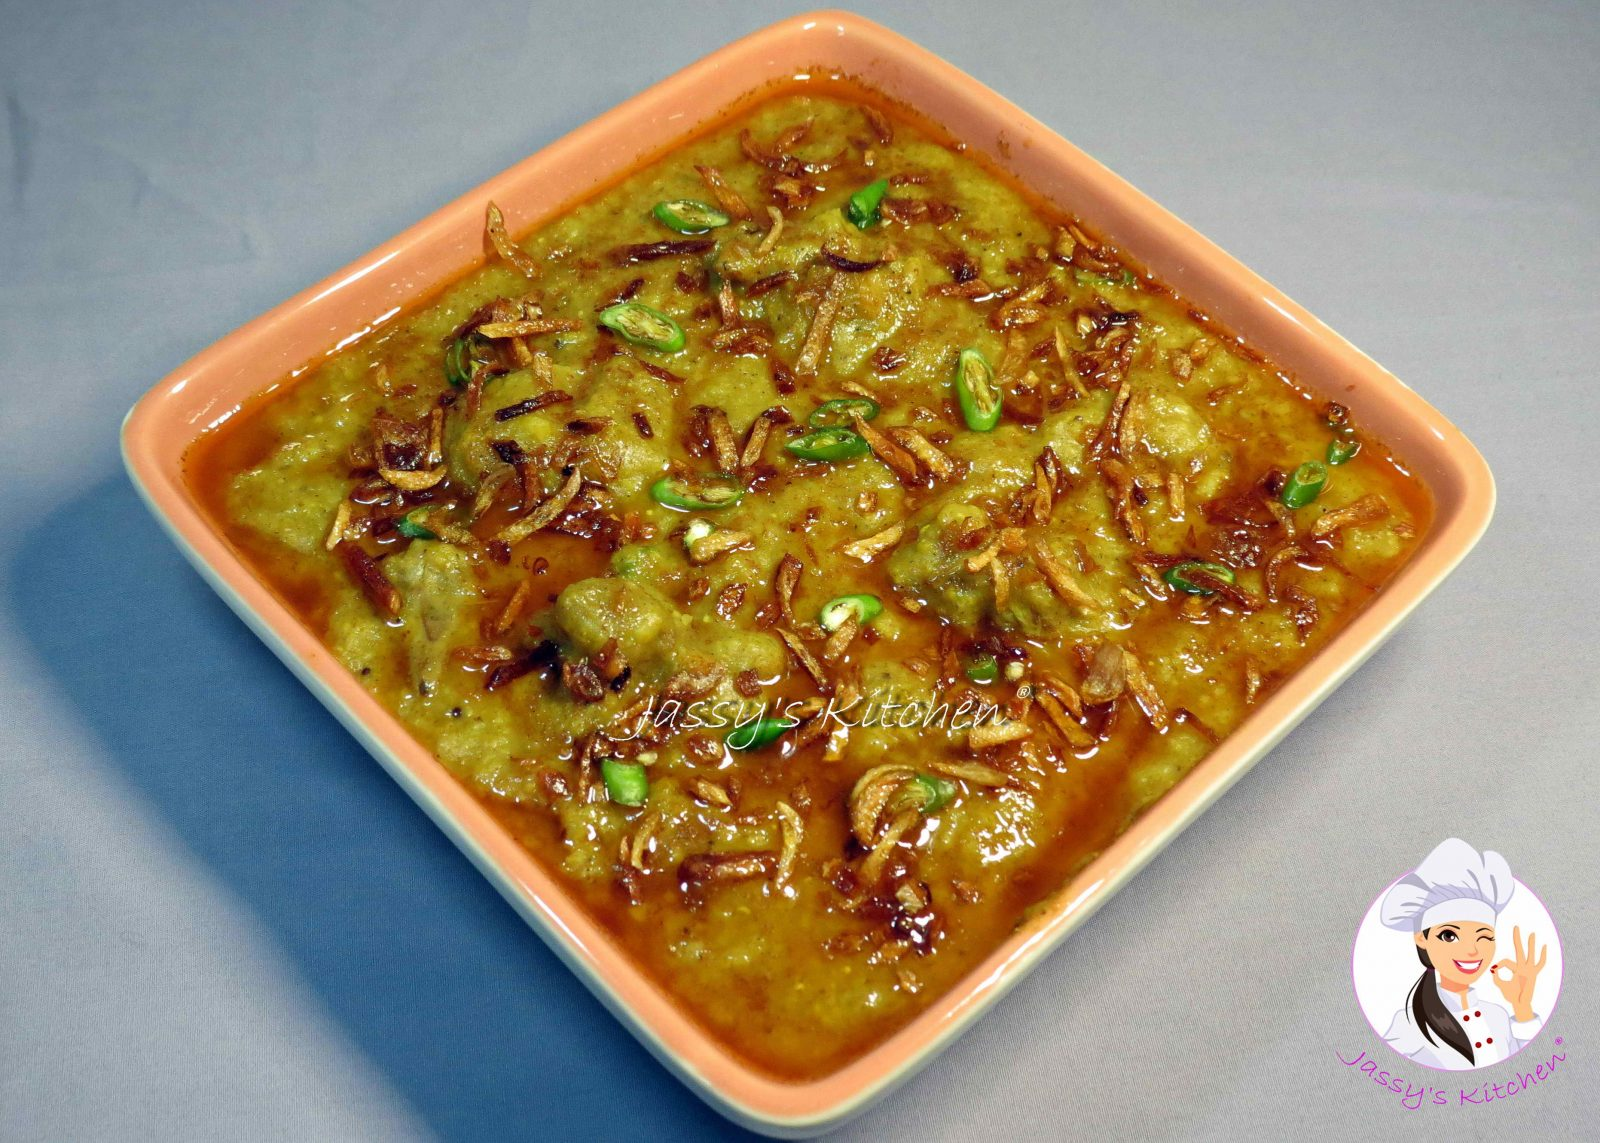 Beef Haleem from Jassy's Kitchen